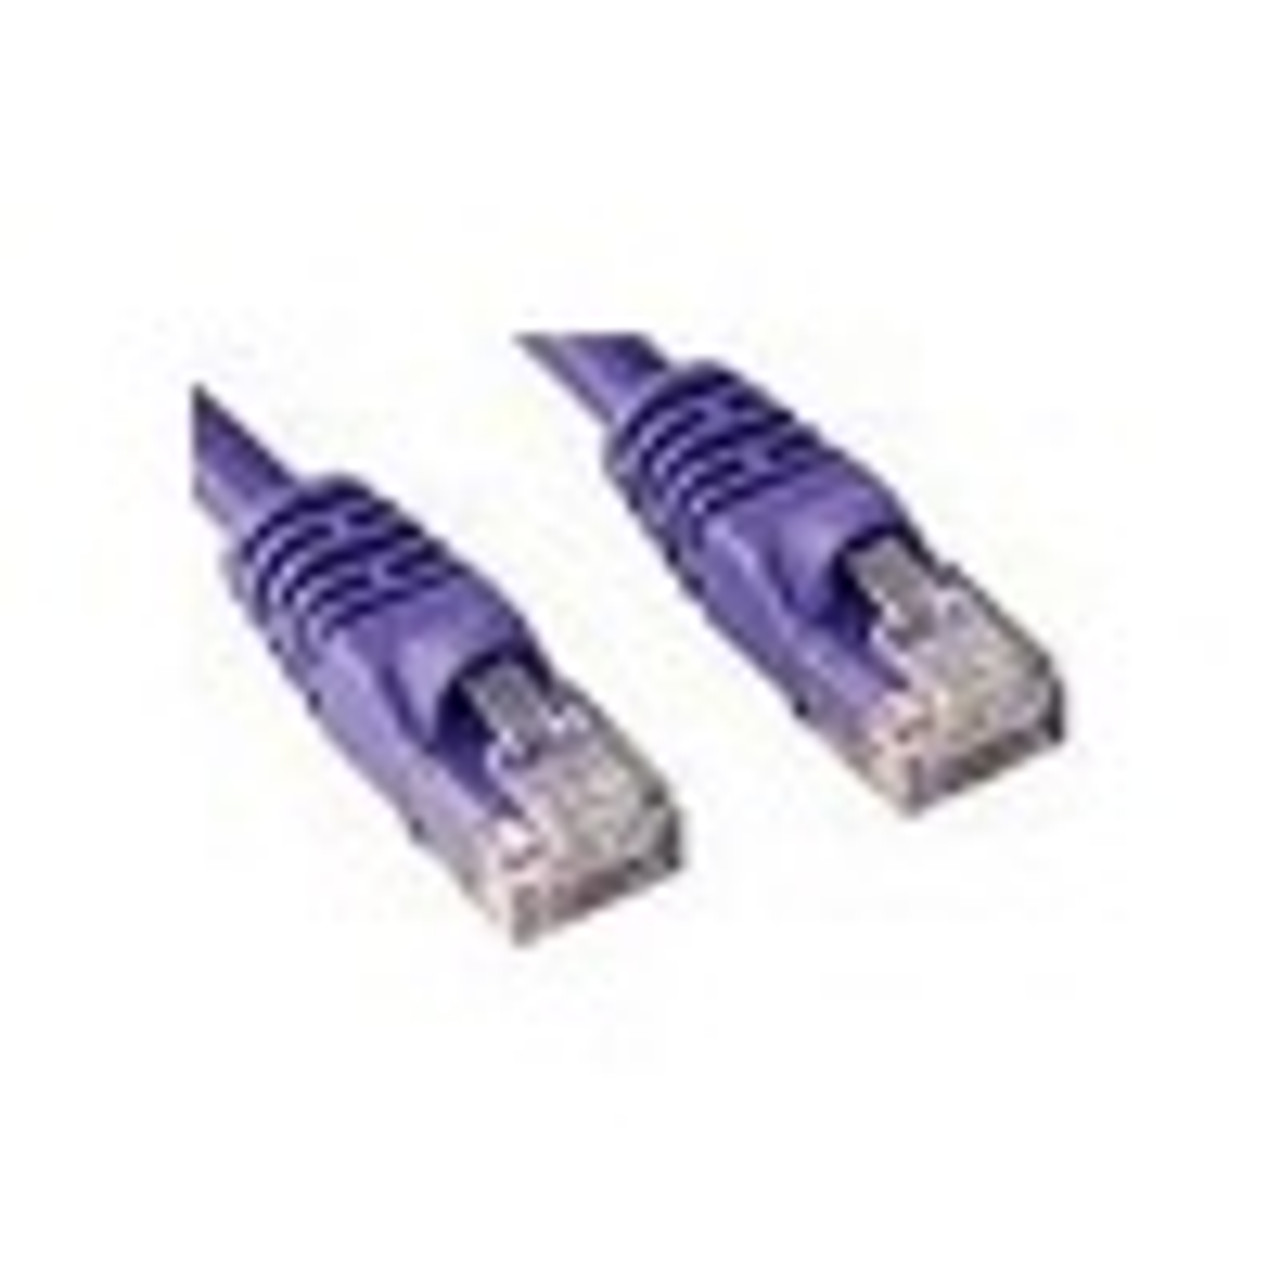 Product image for CAT5e PATCH CORD  3M PURPLE Network Cable 45348 | CX Computer Superstore